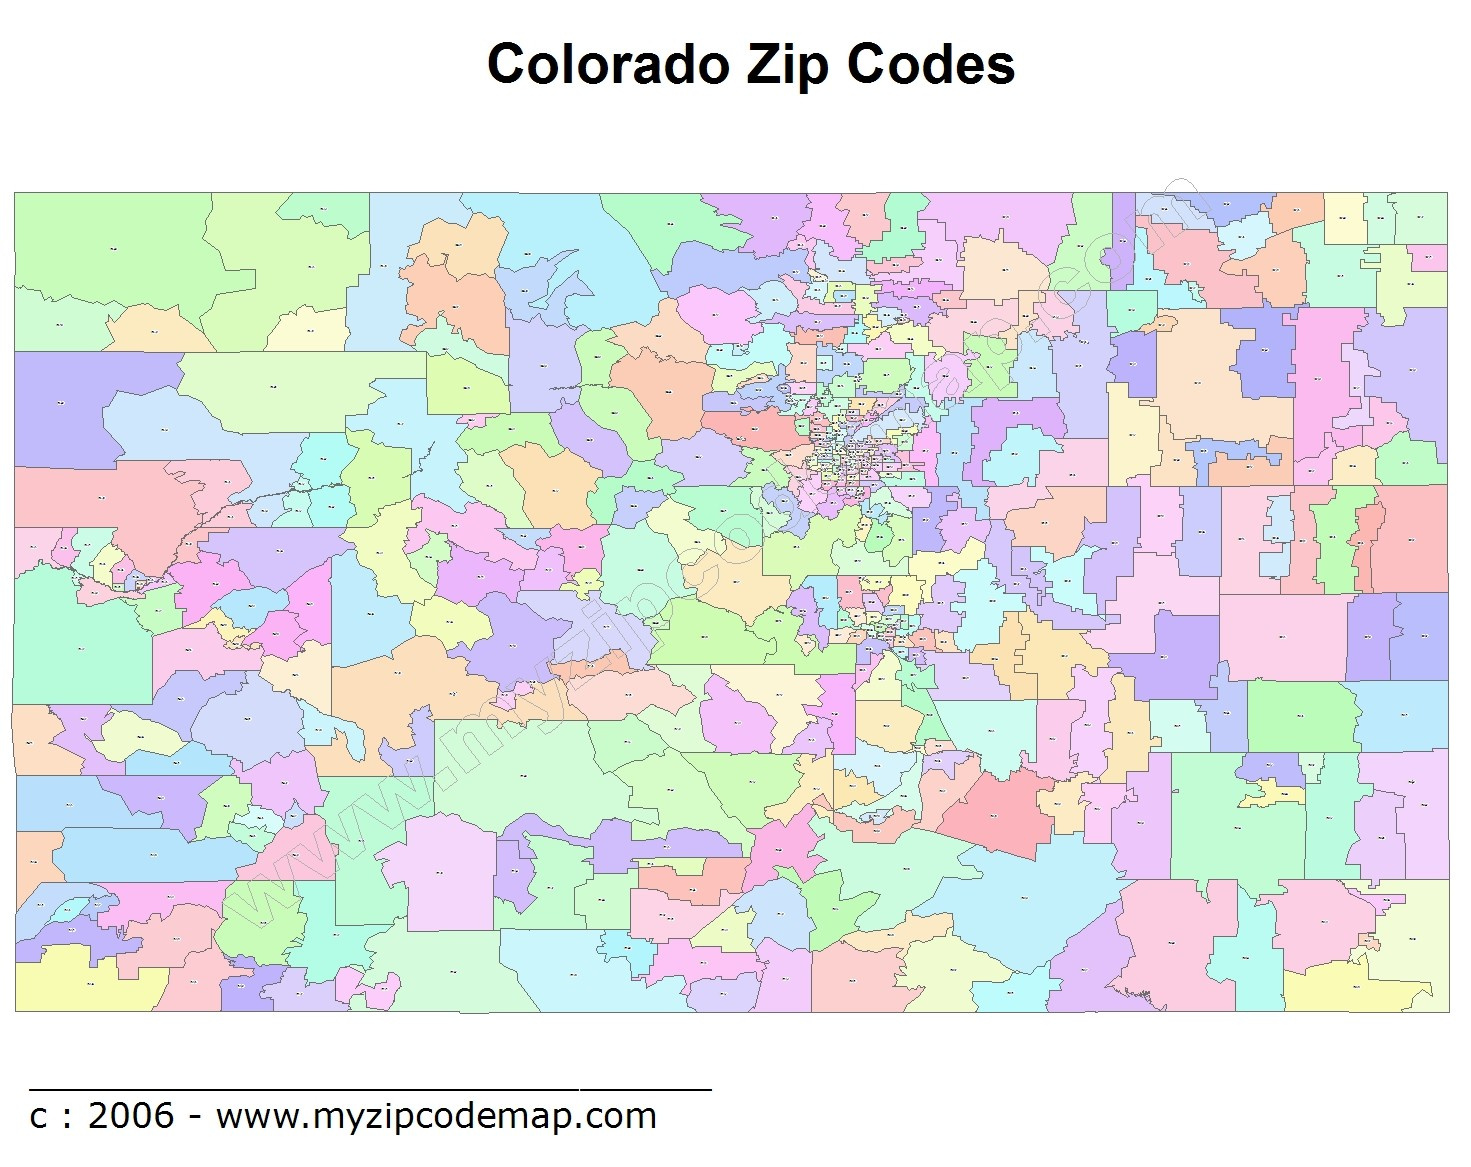 Colorado (CO) Zip Code Map